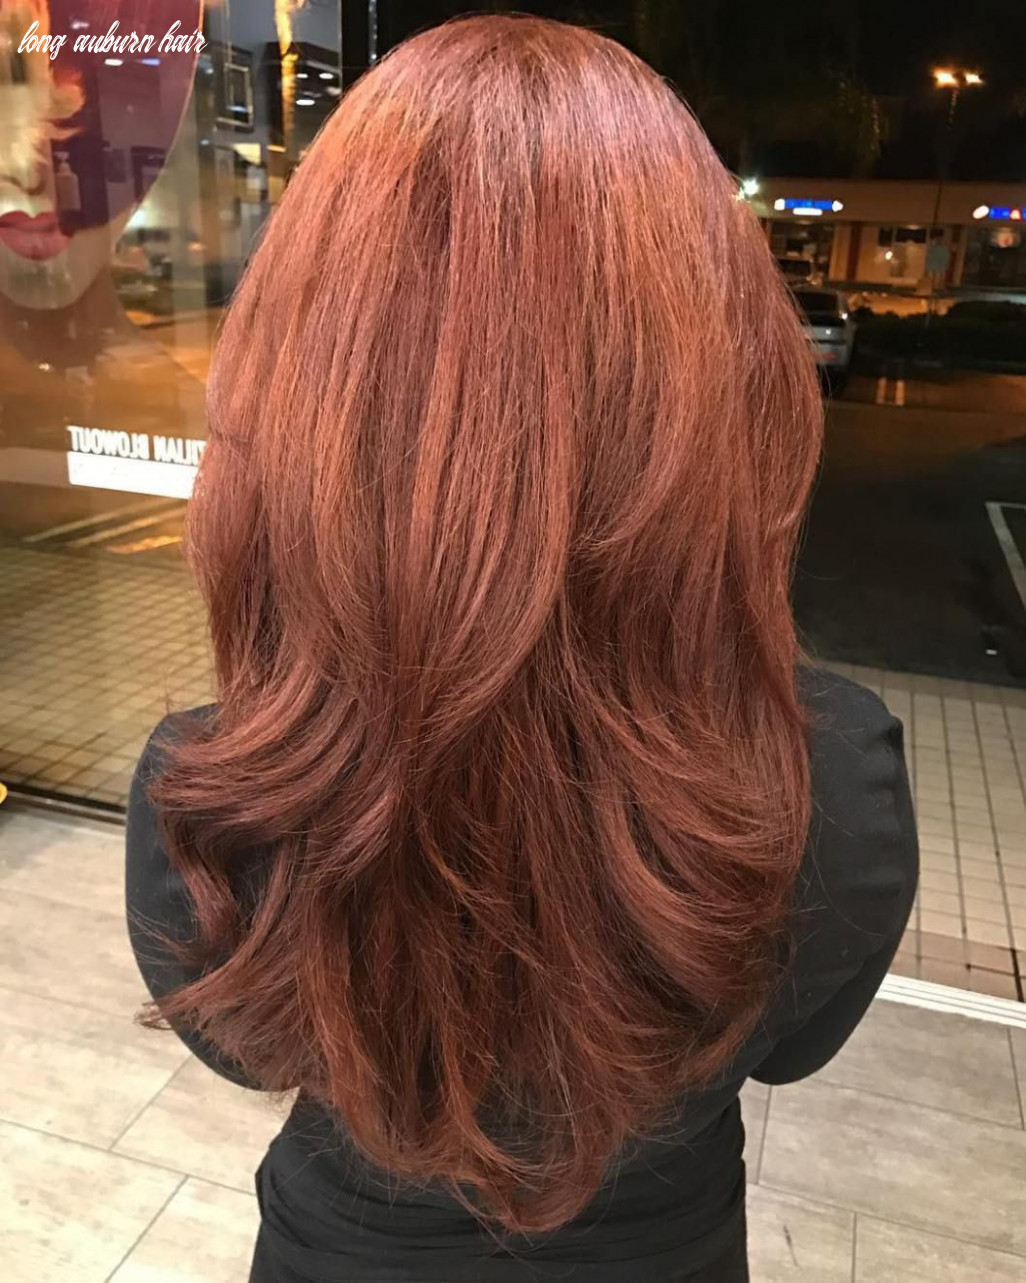 12 auburn hair colors to emphasize your individuality | hair color